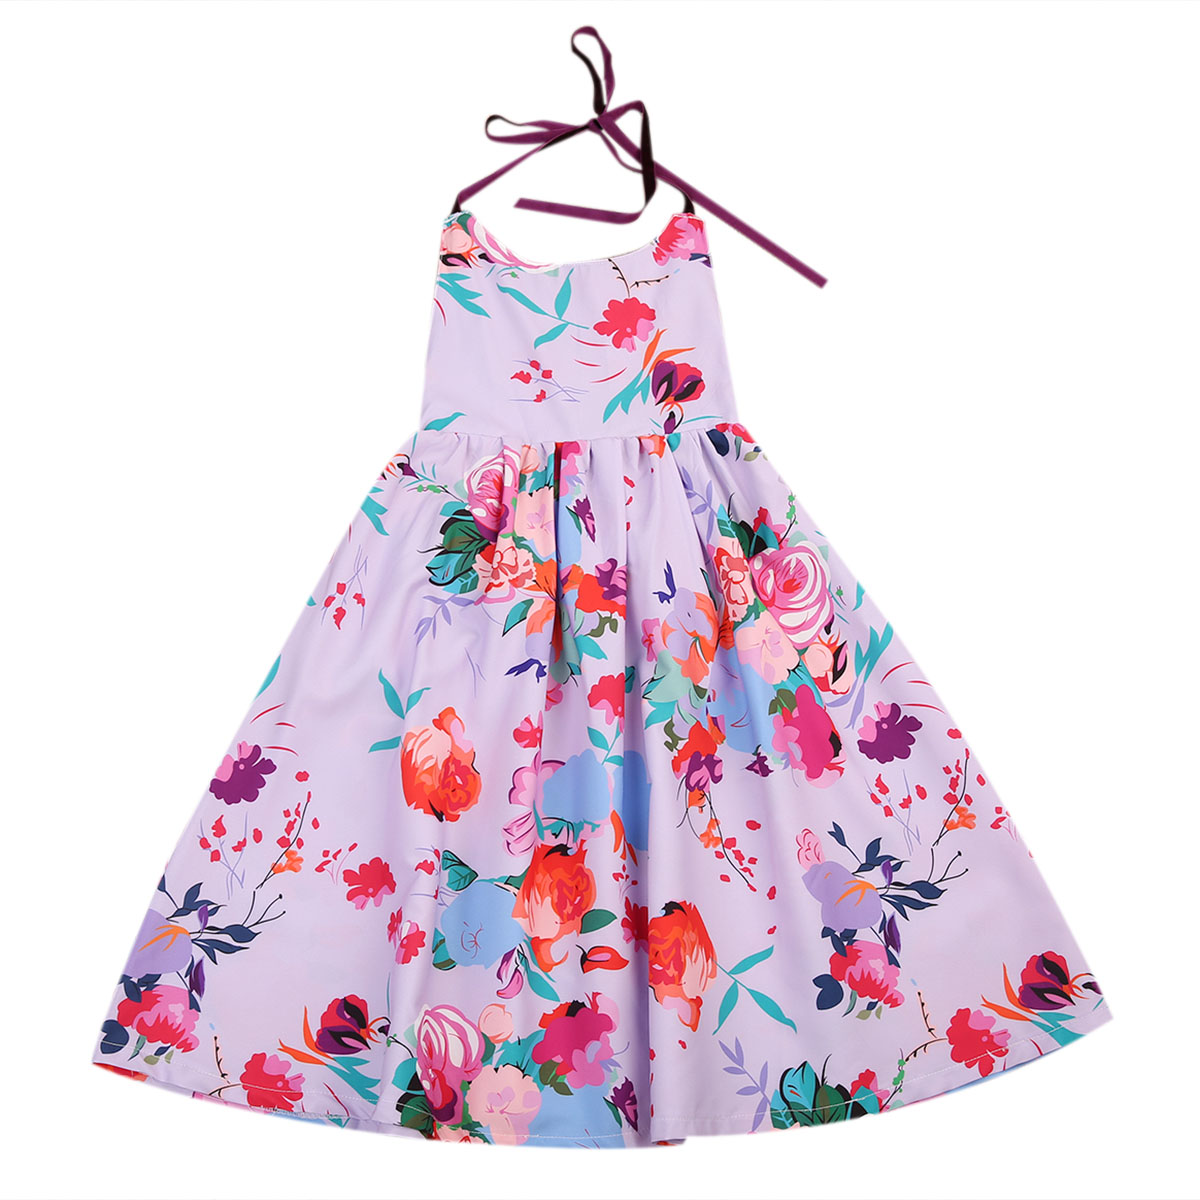 Adorable Baby Girls Sleeveless Floral Mini Dress Clothes Fashion Kids Girl Summer Strap Princess Party Dresses Age 2-7 Years стоимость